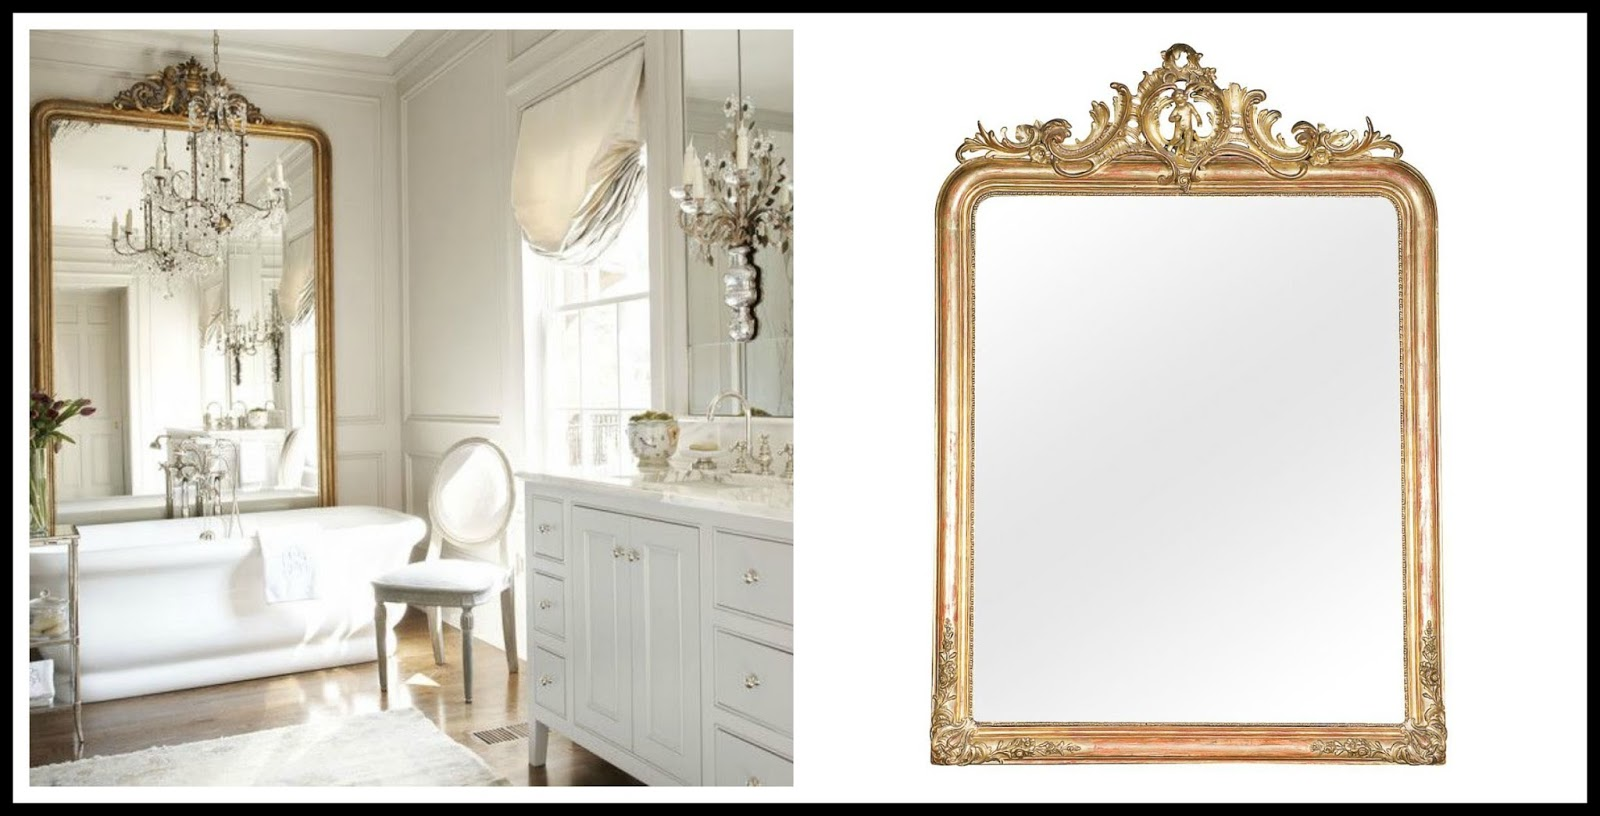 Lolo's French Bloguette: DOUBLE VISION: Louis Philippe Mirror